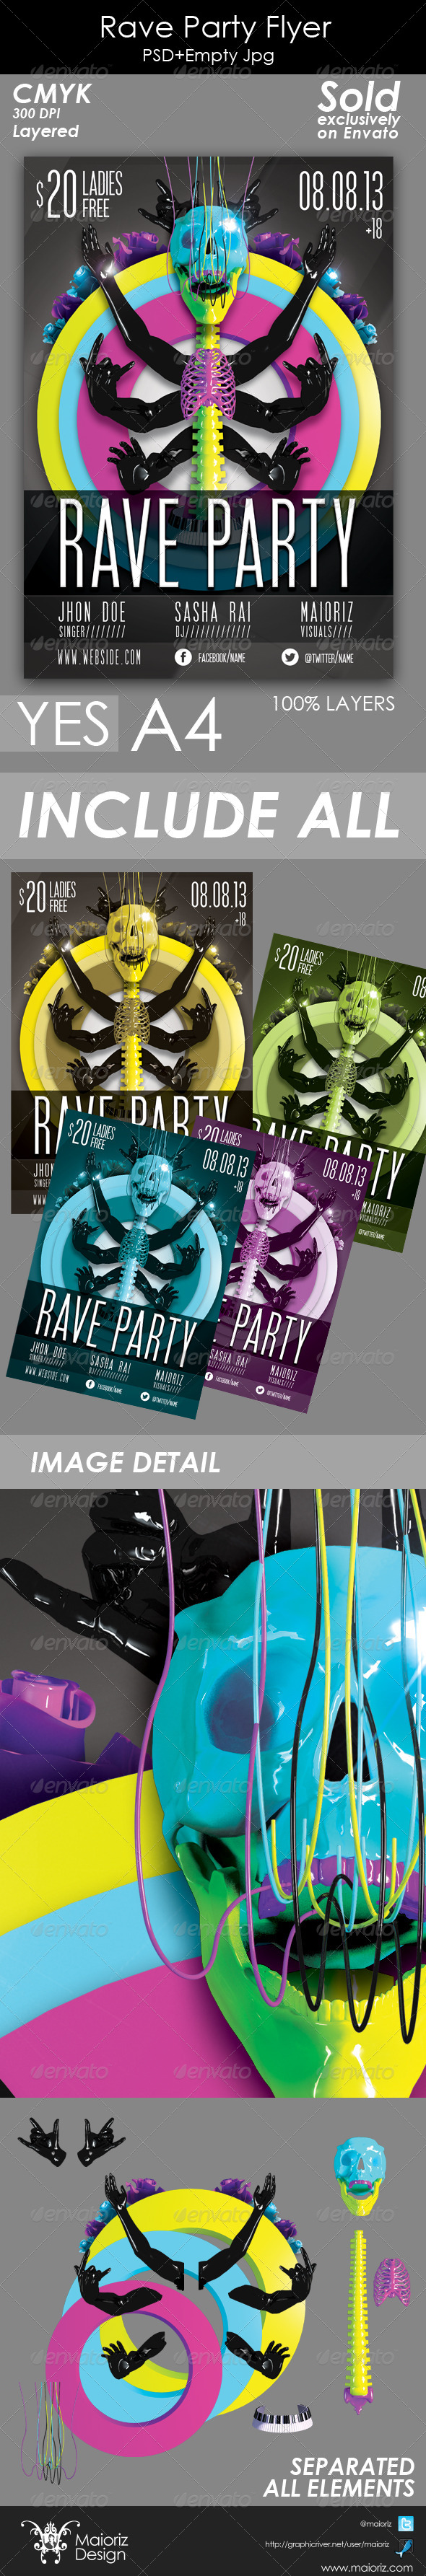 Rave Party Flyer - Clubs & Parties Events